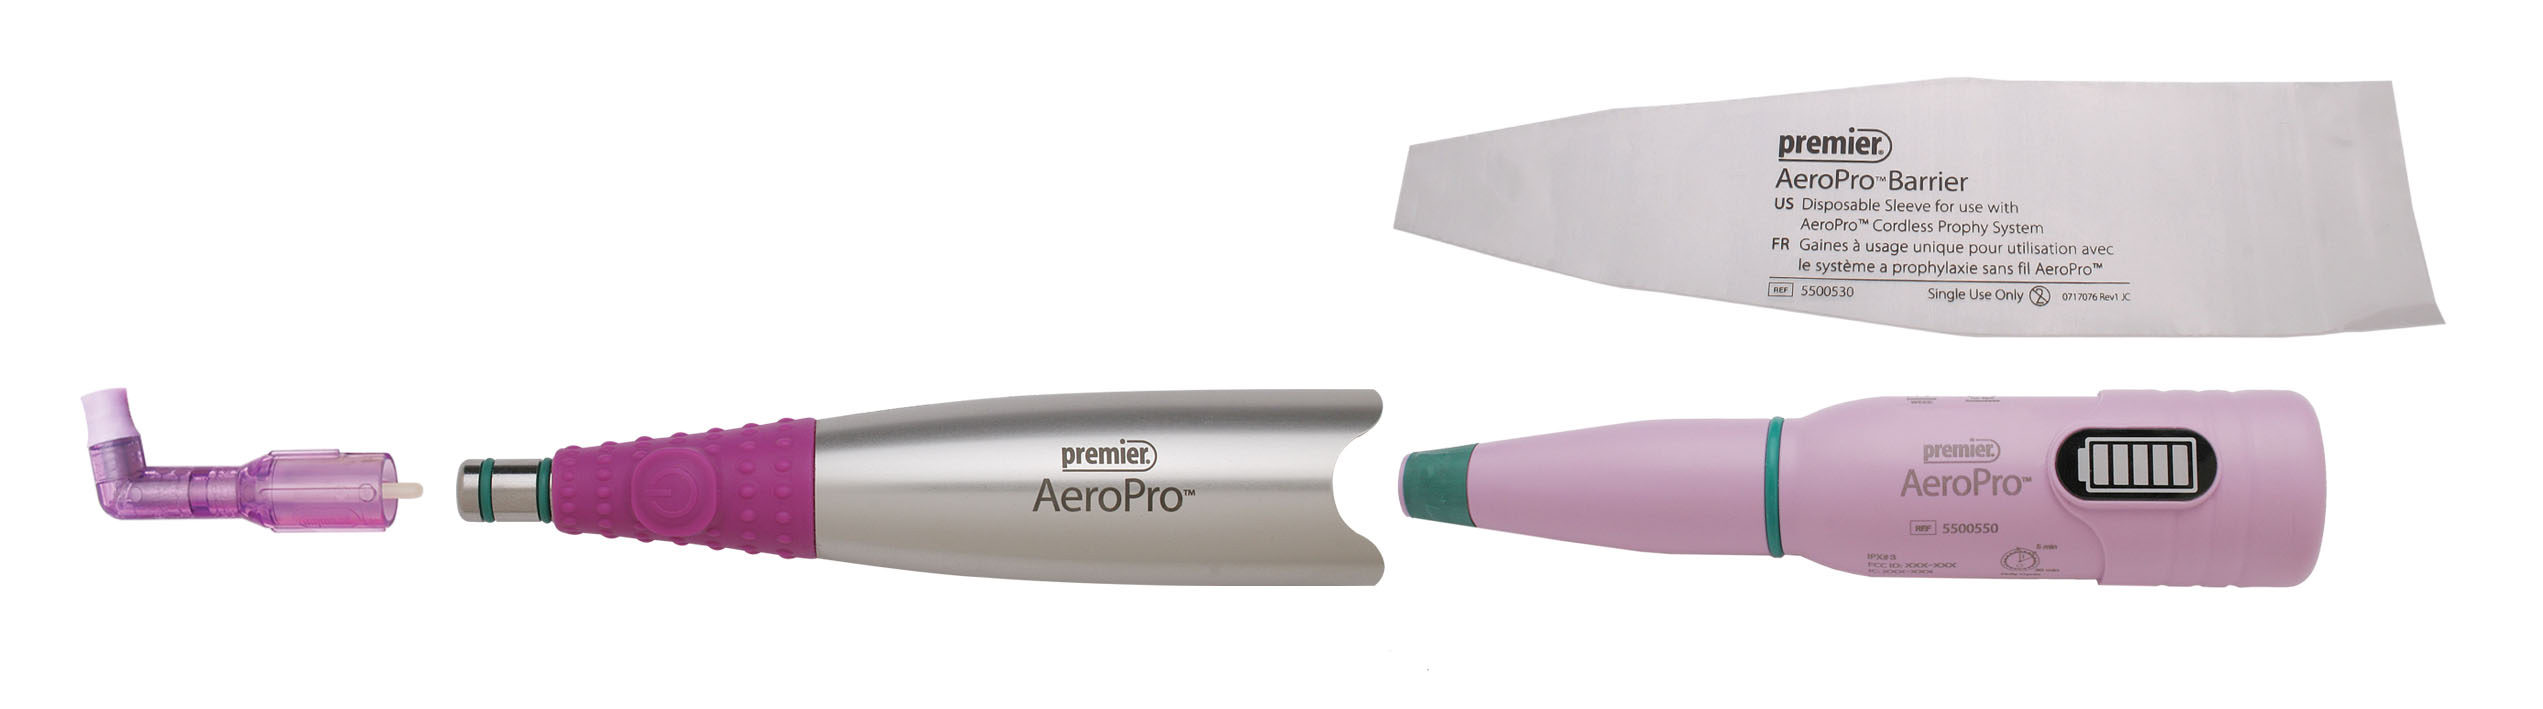 Components of the AeroPro™ Cordless Prophy Handpiece System